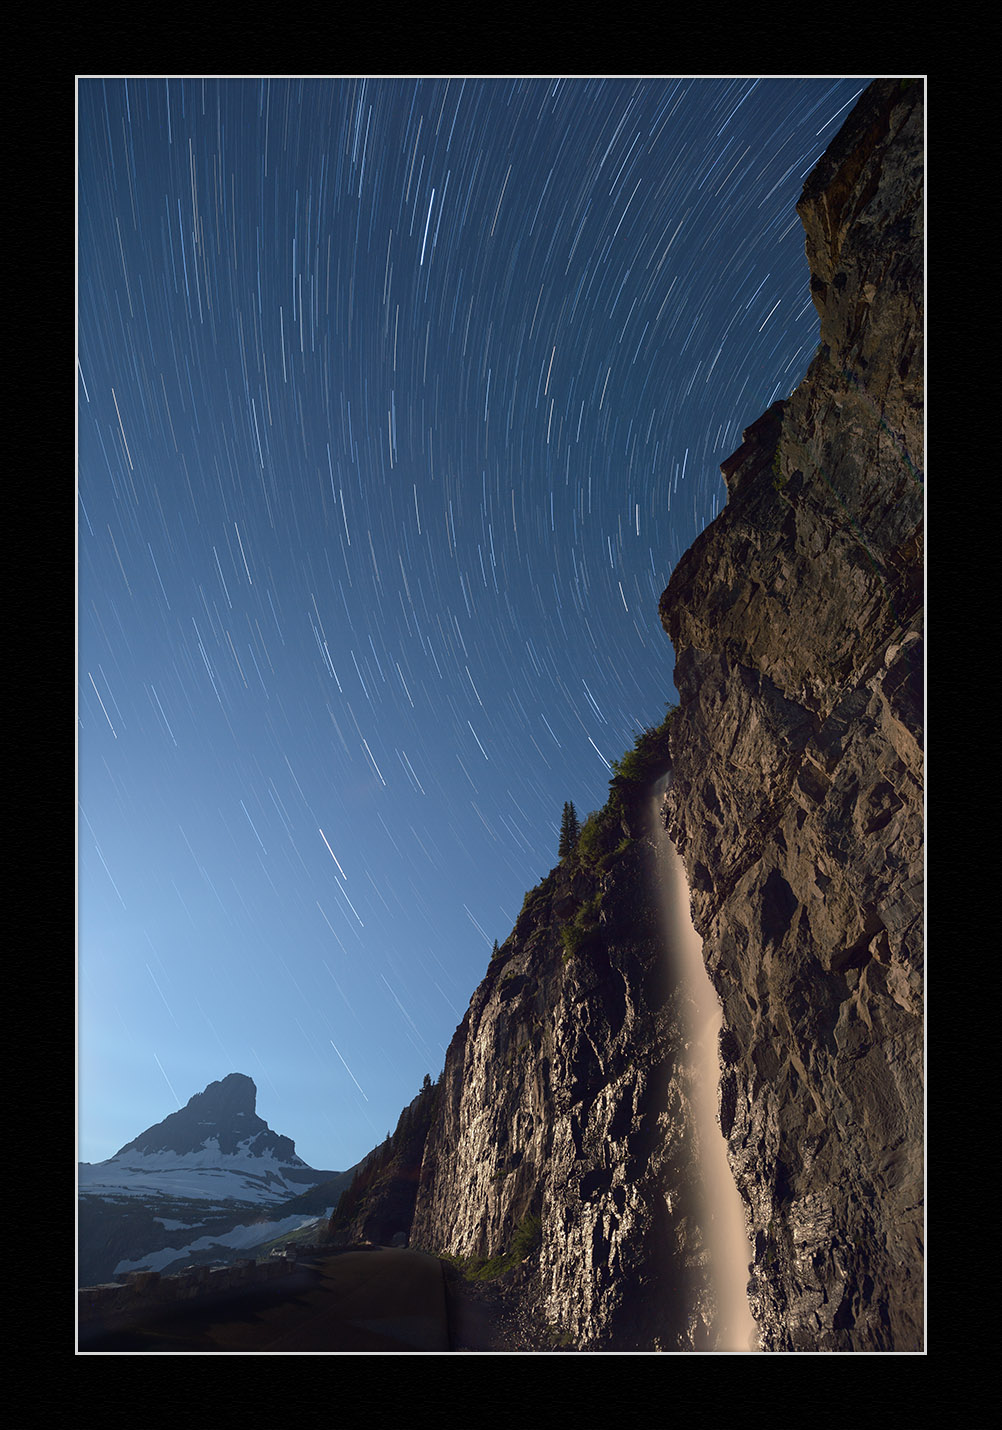 """ Clements Mountain, Star Trails, Waterfall .""  ©  Tim Cooper."